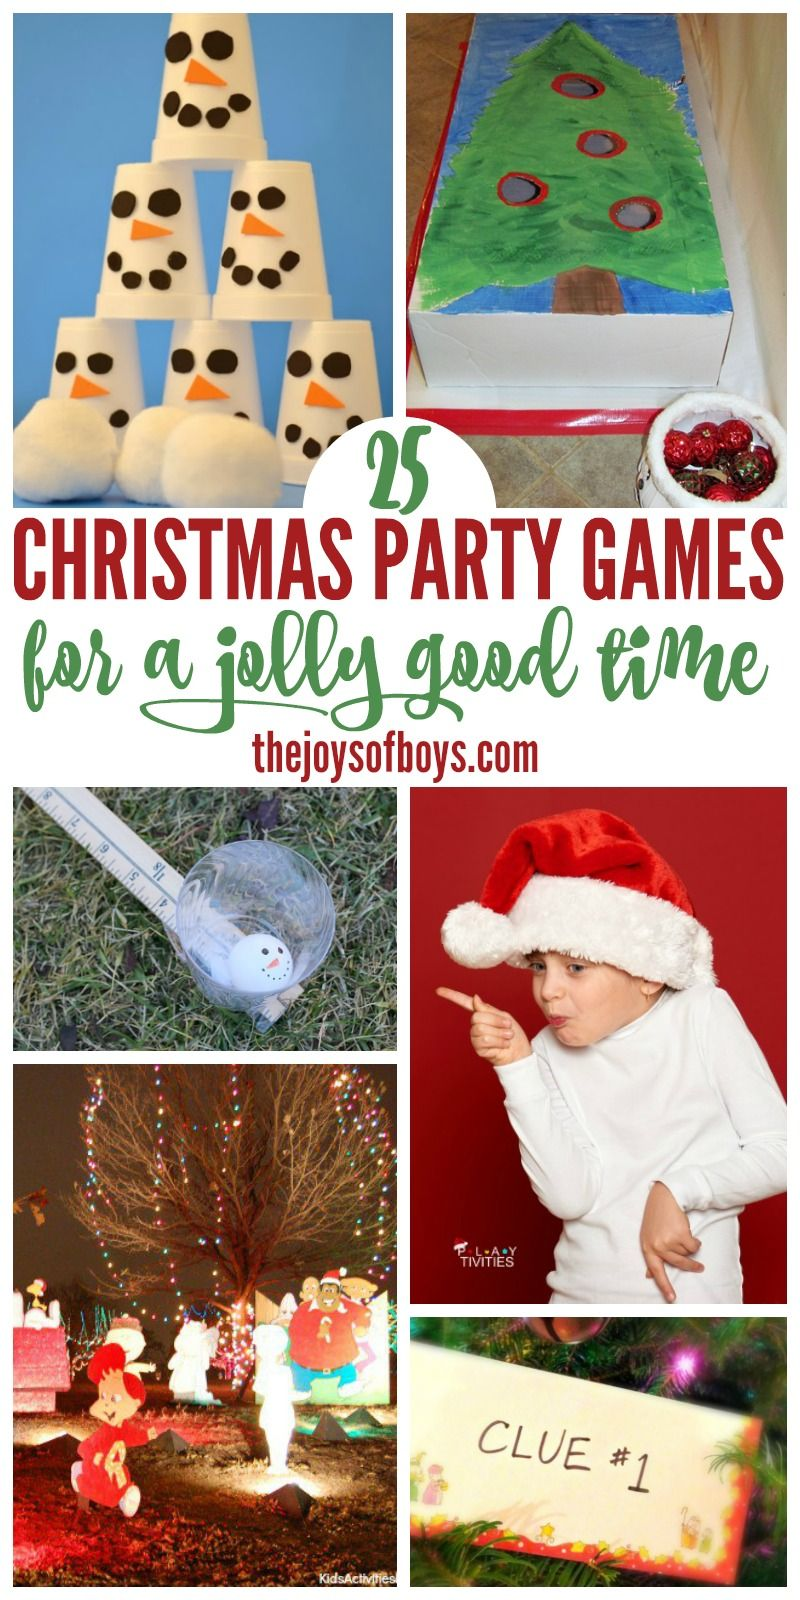 these christmas party games look like so much fun i cant wait to play them at our next christmas party - Fun Christmas Games For Kids